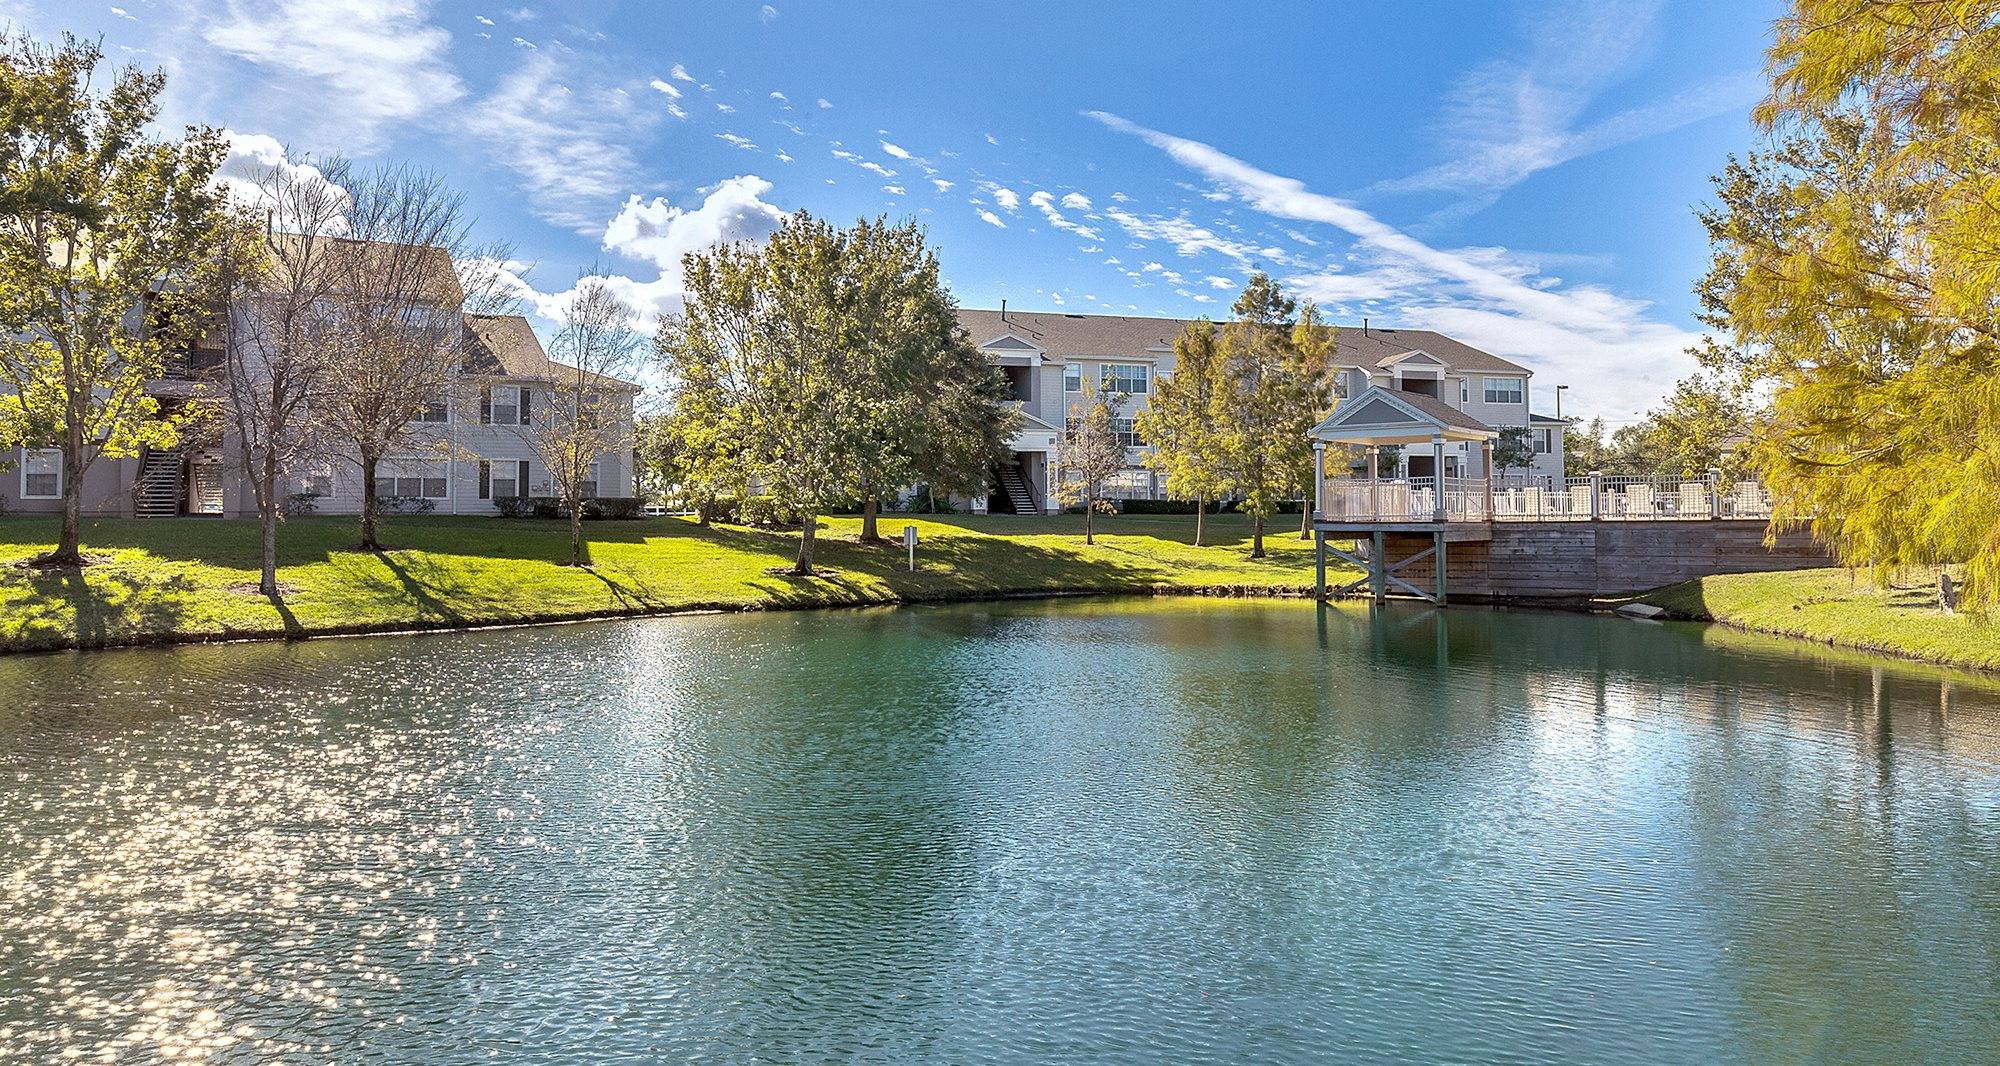 Charleston Club Apartments for rent in Sanford, FL. Make this community your new home or visit other Concord Rents communities at ConcordRents.com. Lake view